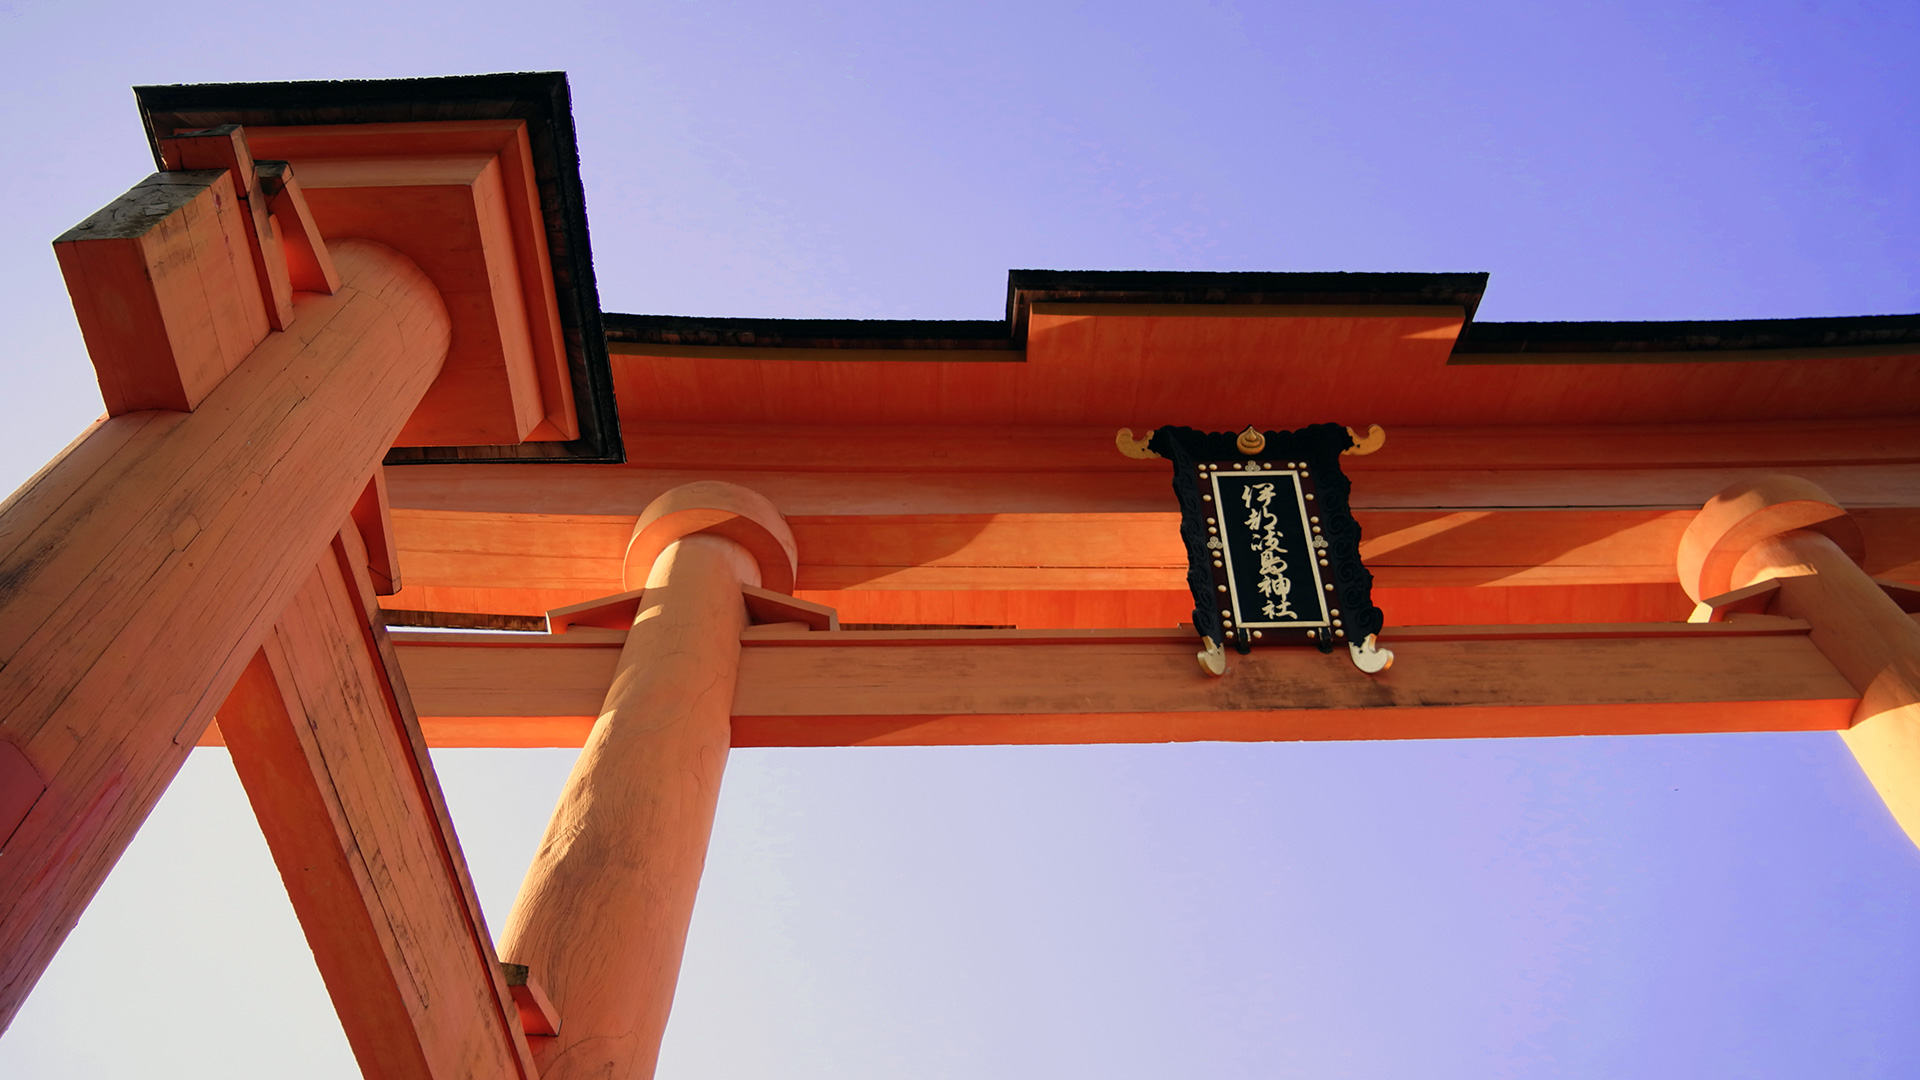 Detail of the Otorii